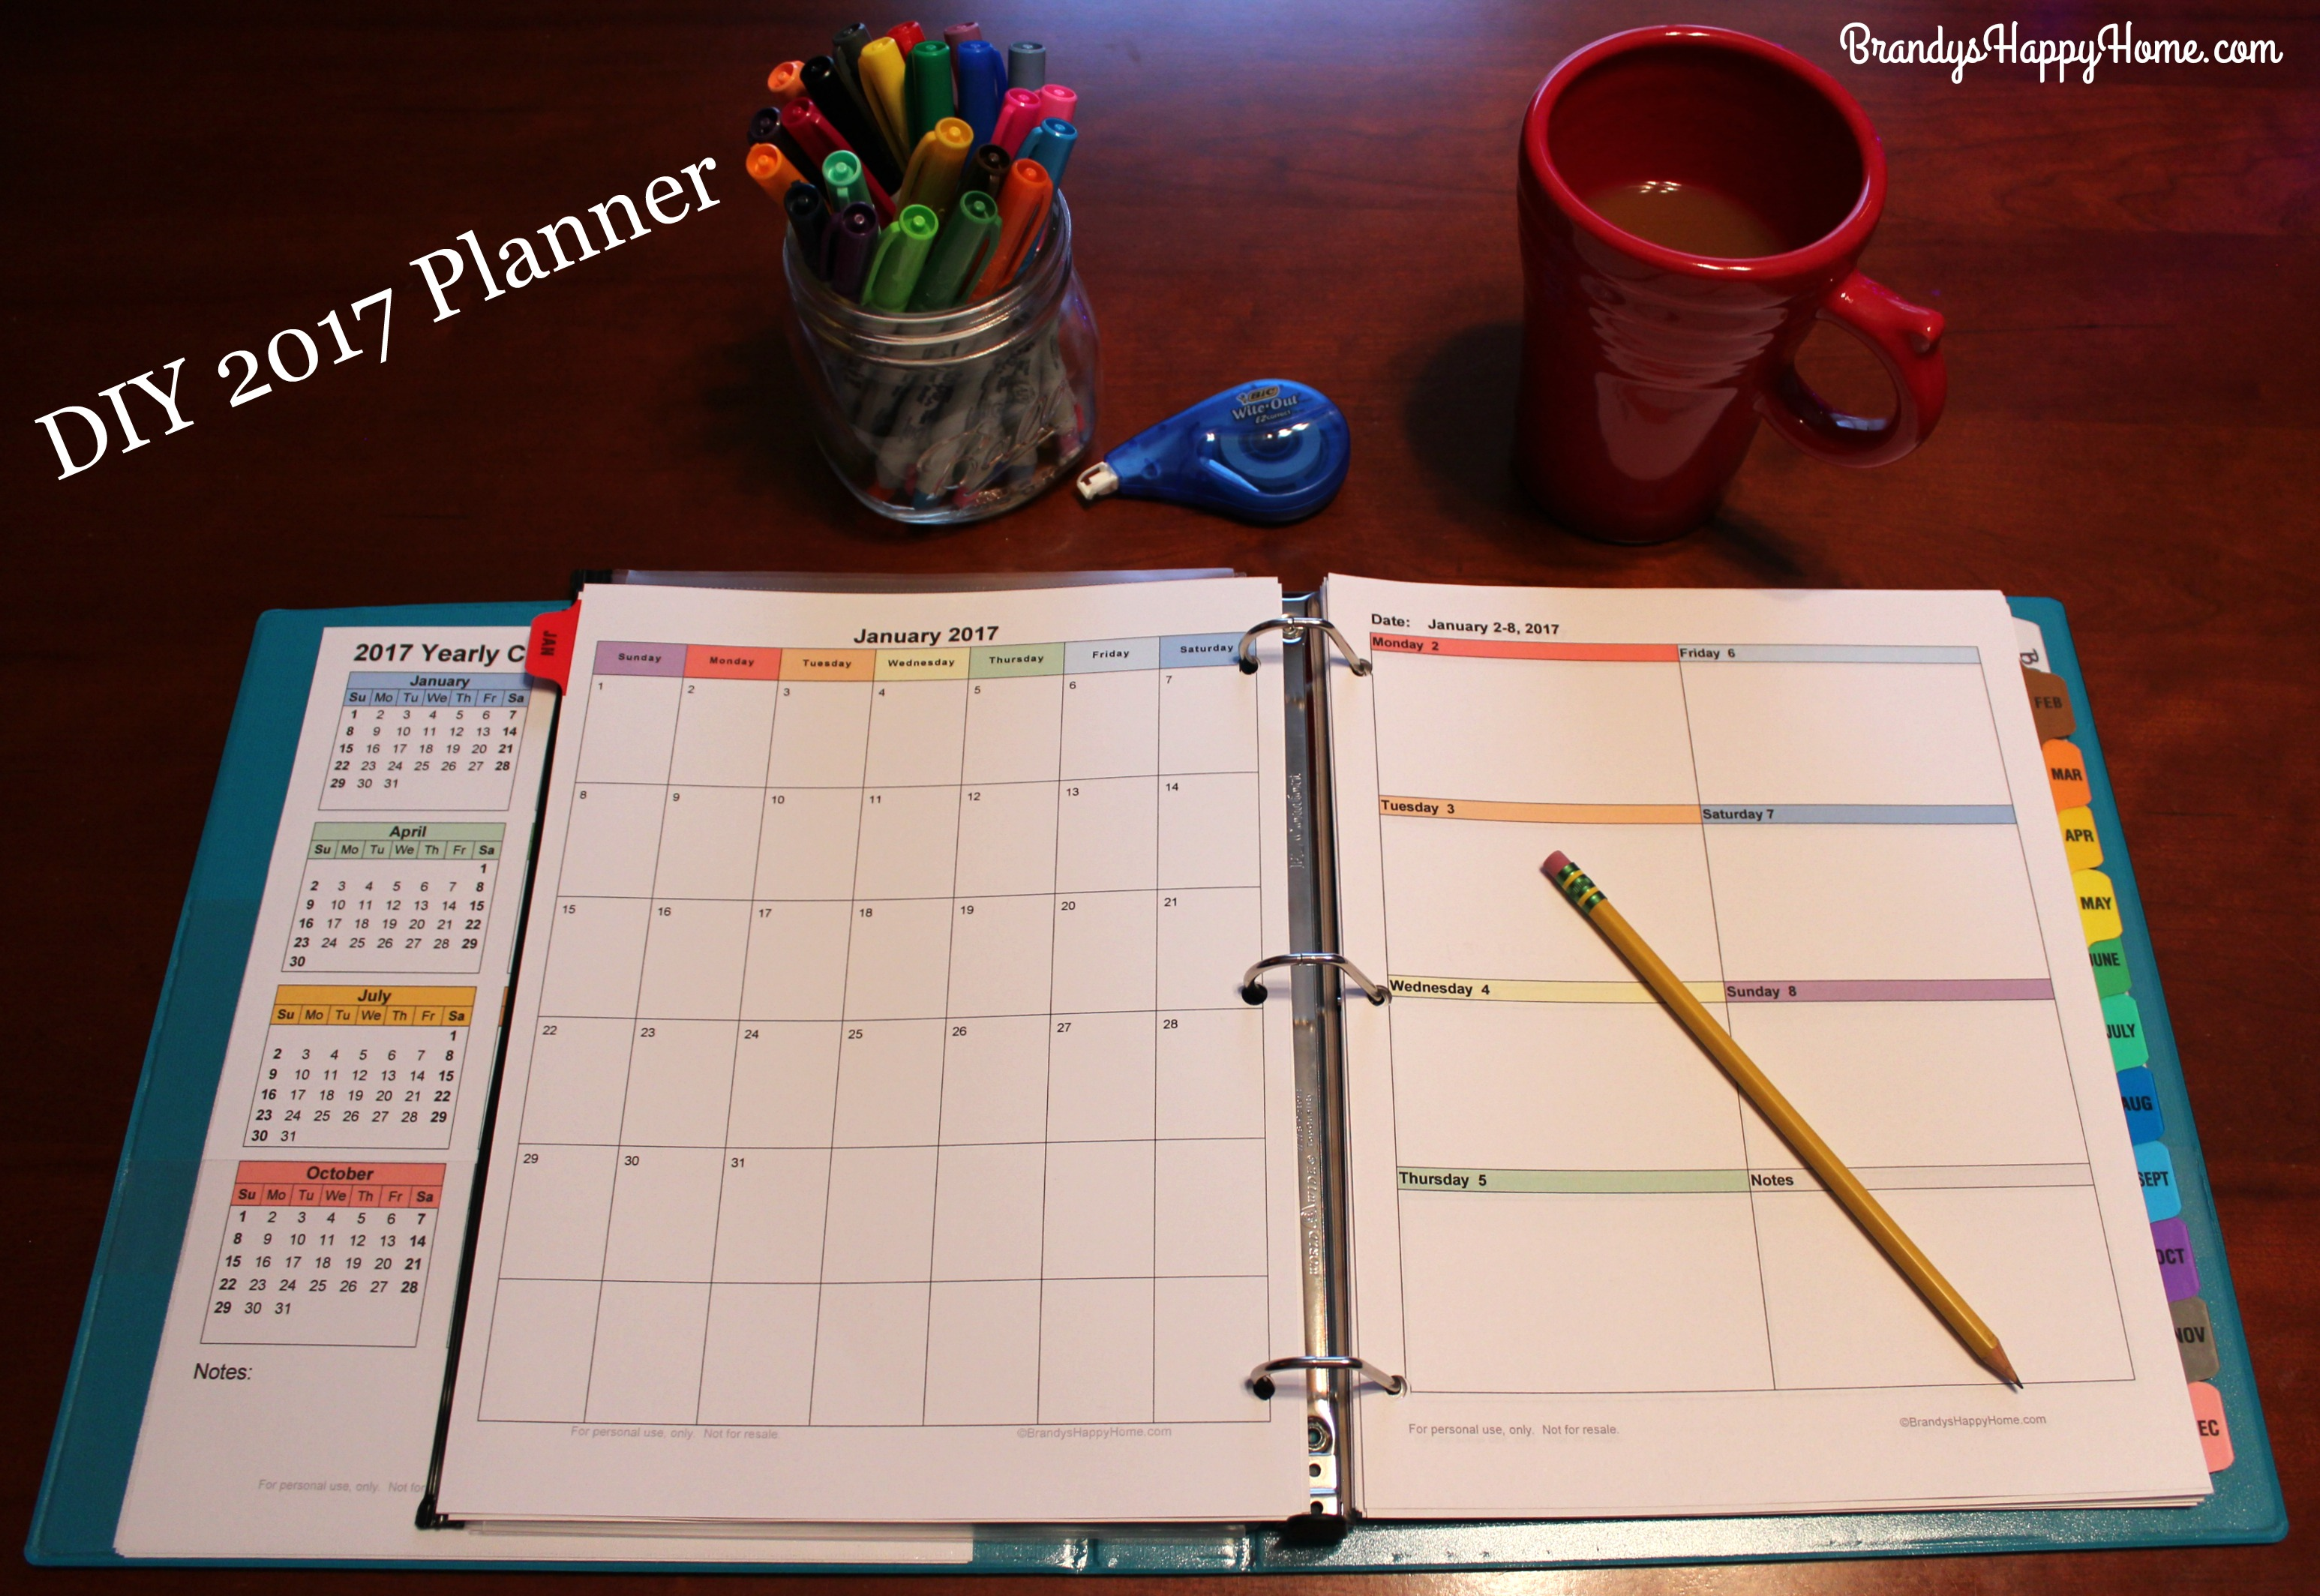 Diy Kitchen Calendar : Diy calendar planner